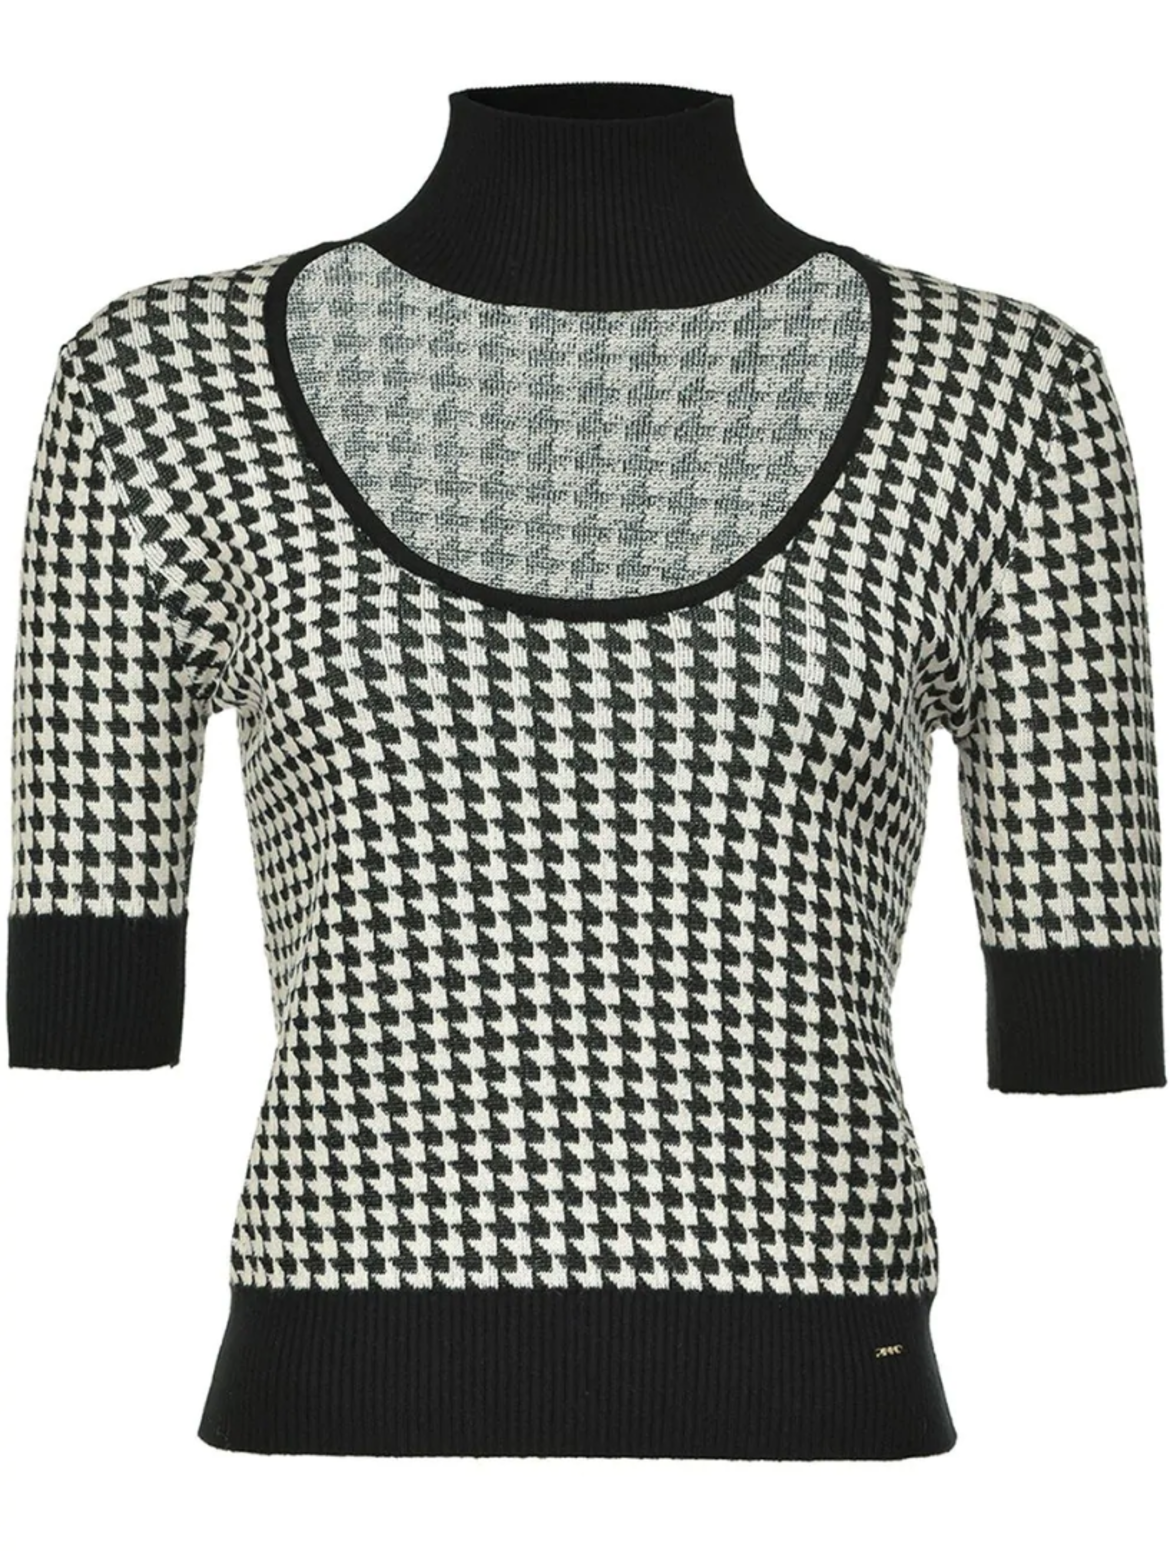 Pinkohoundstooth knitted top HK$2,100 from farfetch